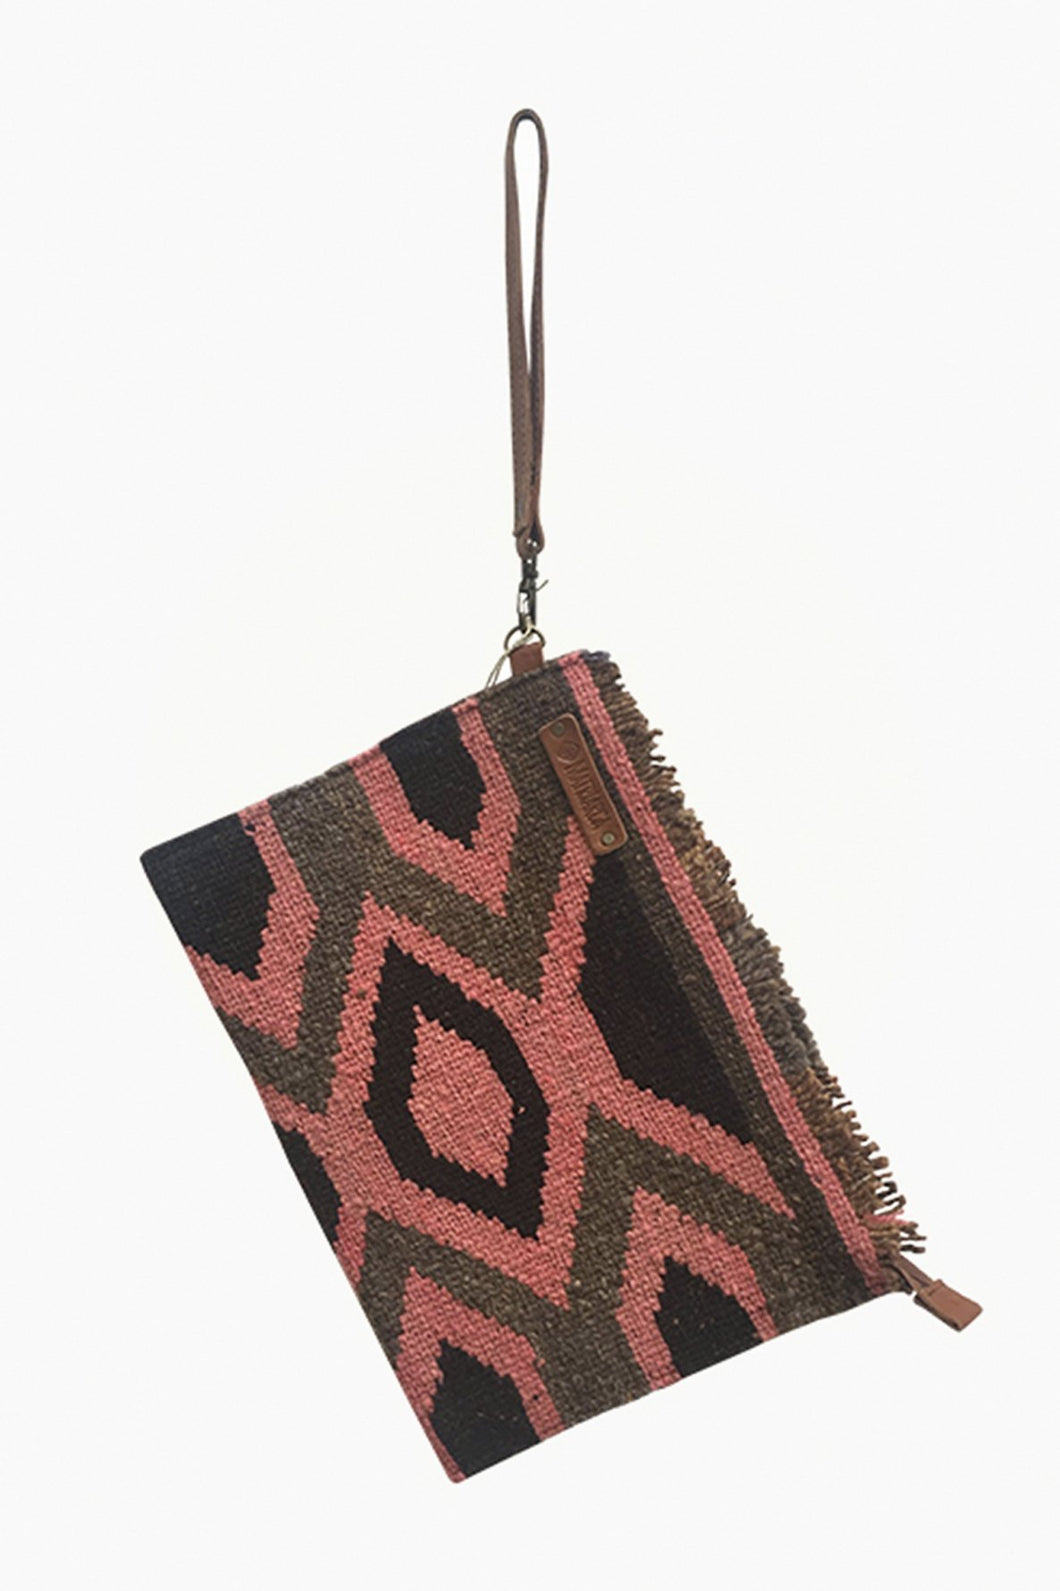 Pink, Natural Brown, and Black Clutch Bag.